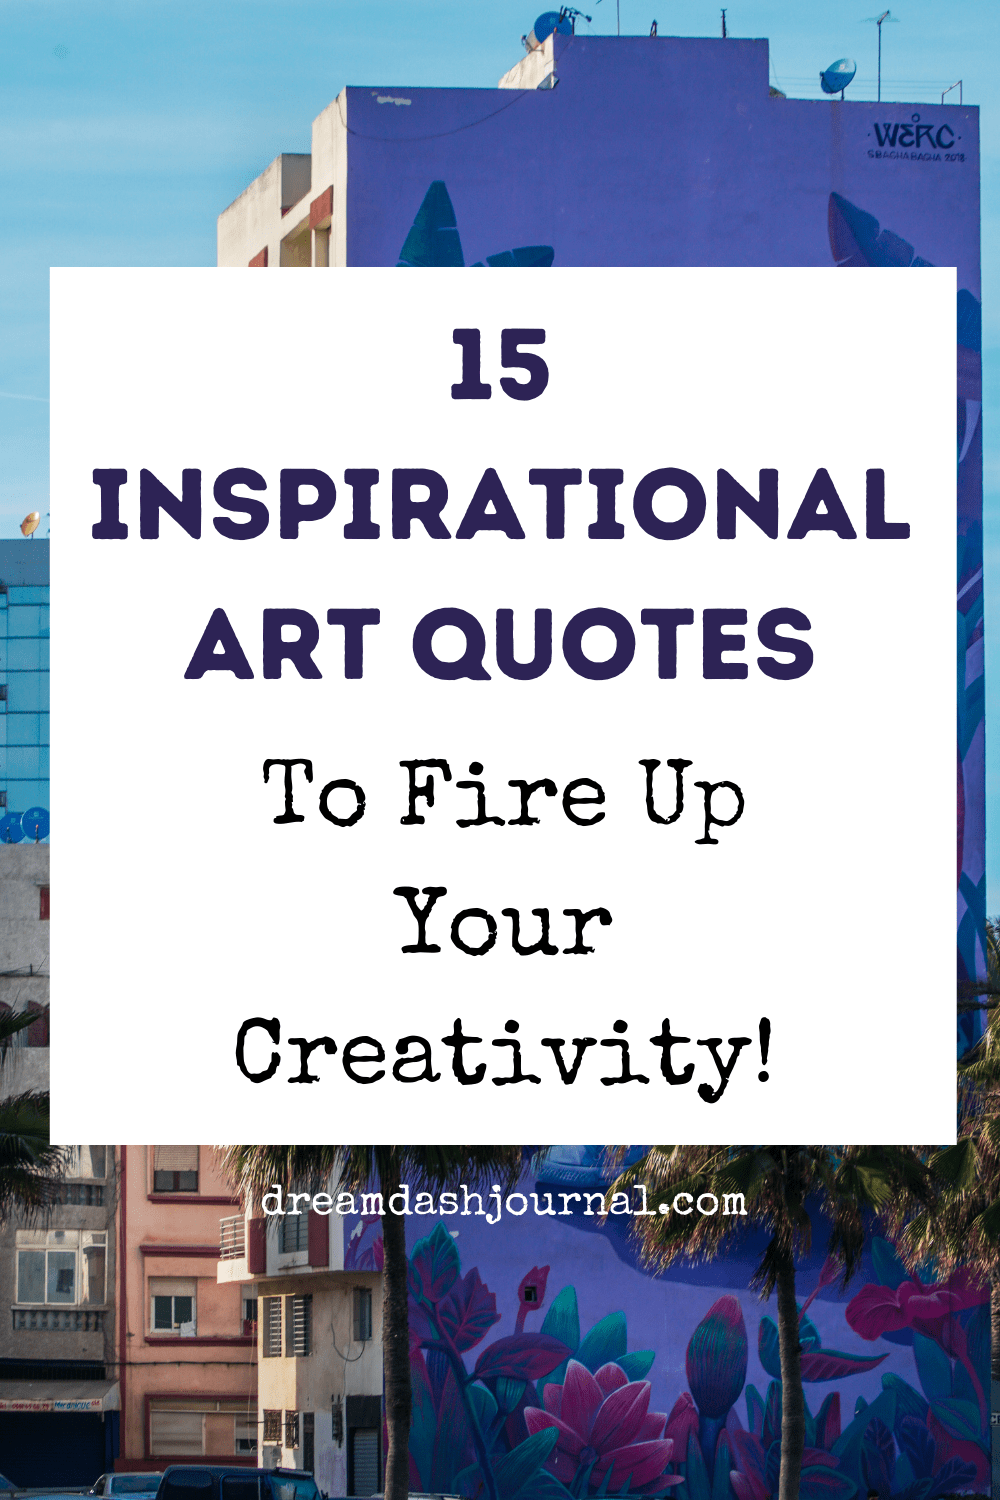 15 Inspirational Art Quotes For Artists That Will Inspire You to Create